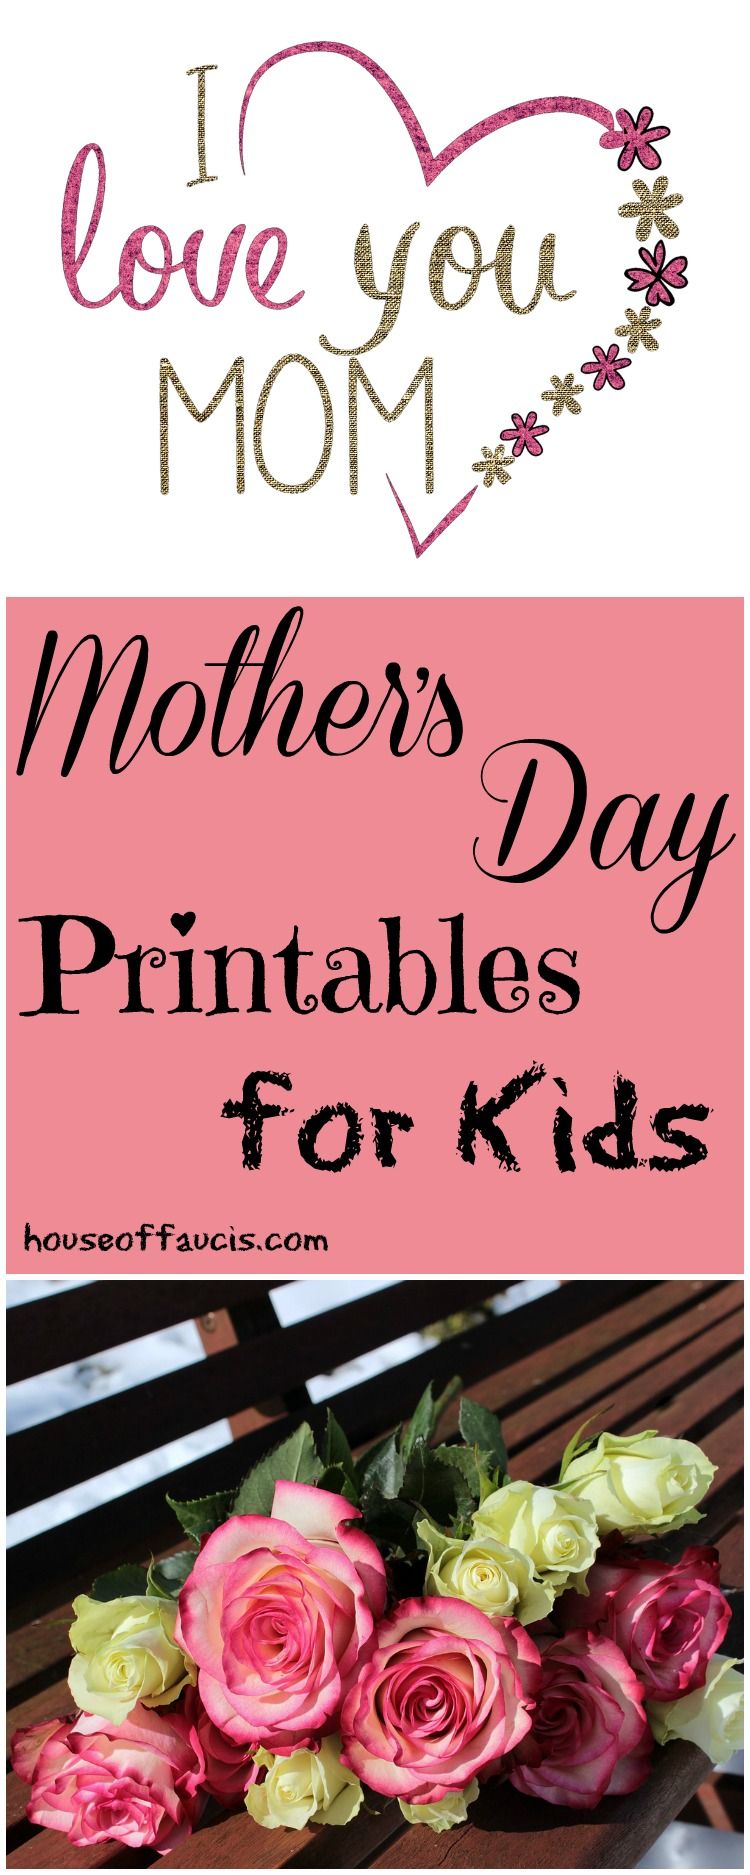 Mother S Day Printables For Kids House Of Faucis